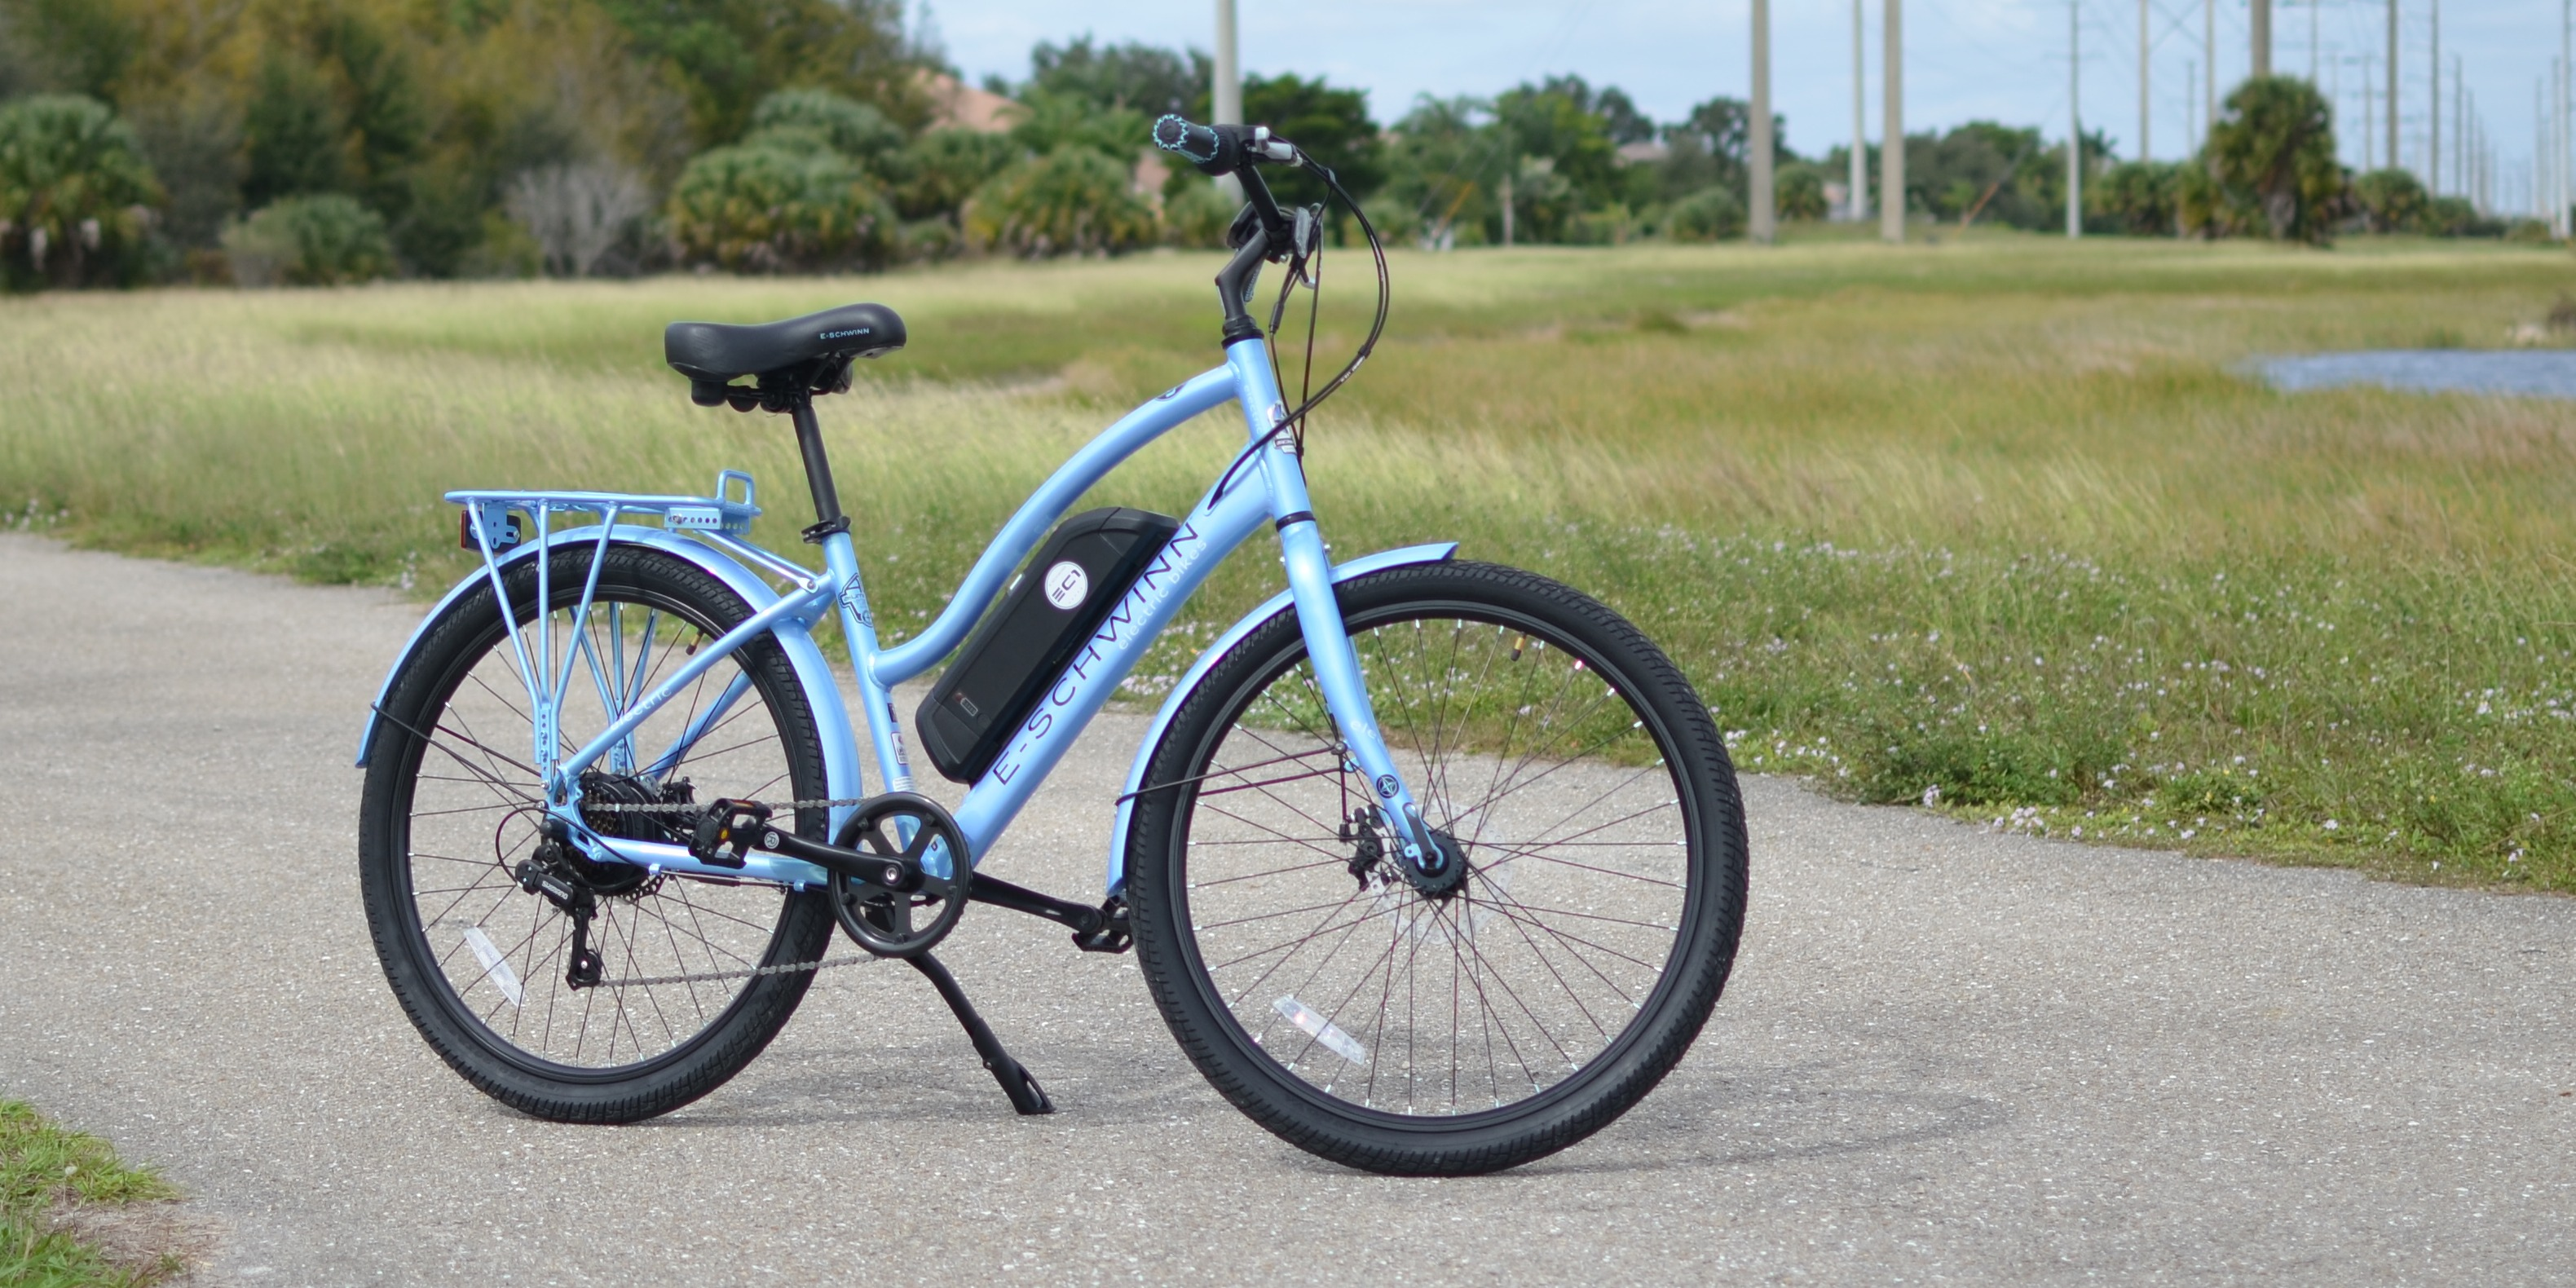 Electric Road Bike Reviews Prices Specs Videos Photos >> Schwinn Ec1 Electric Bicycle Review A Fun And Comfortable E